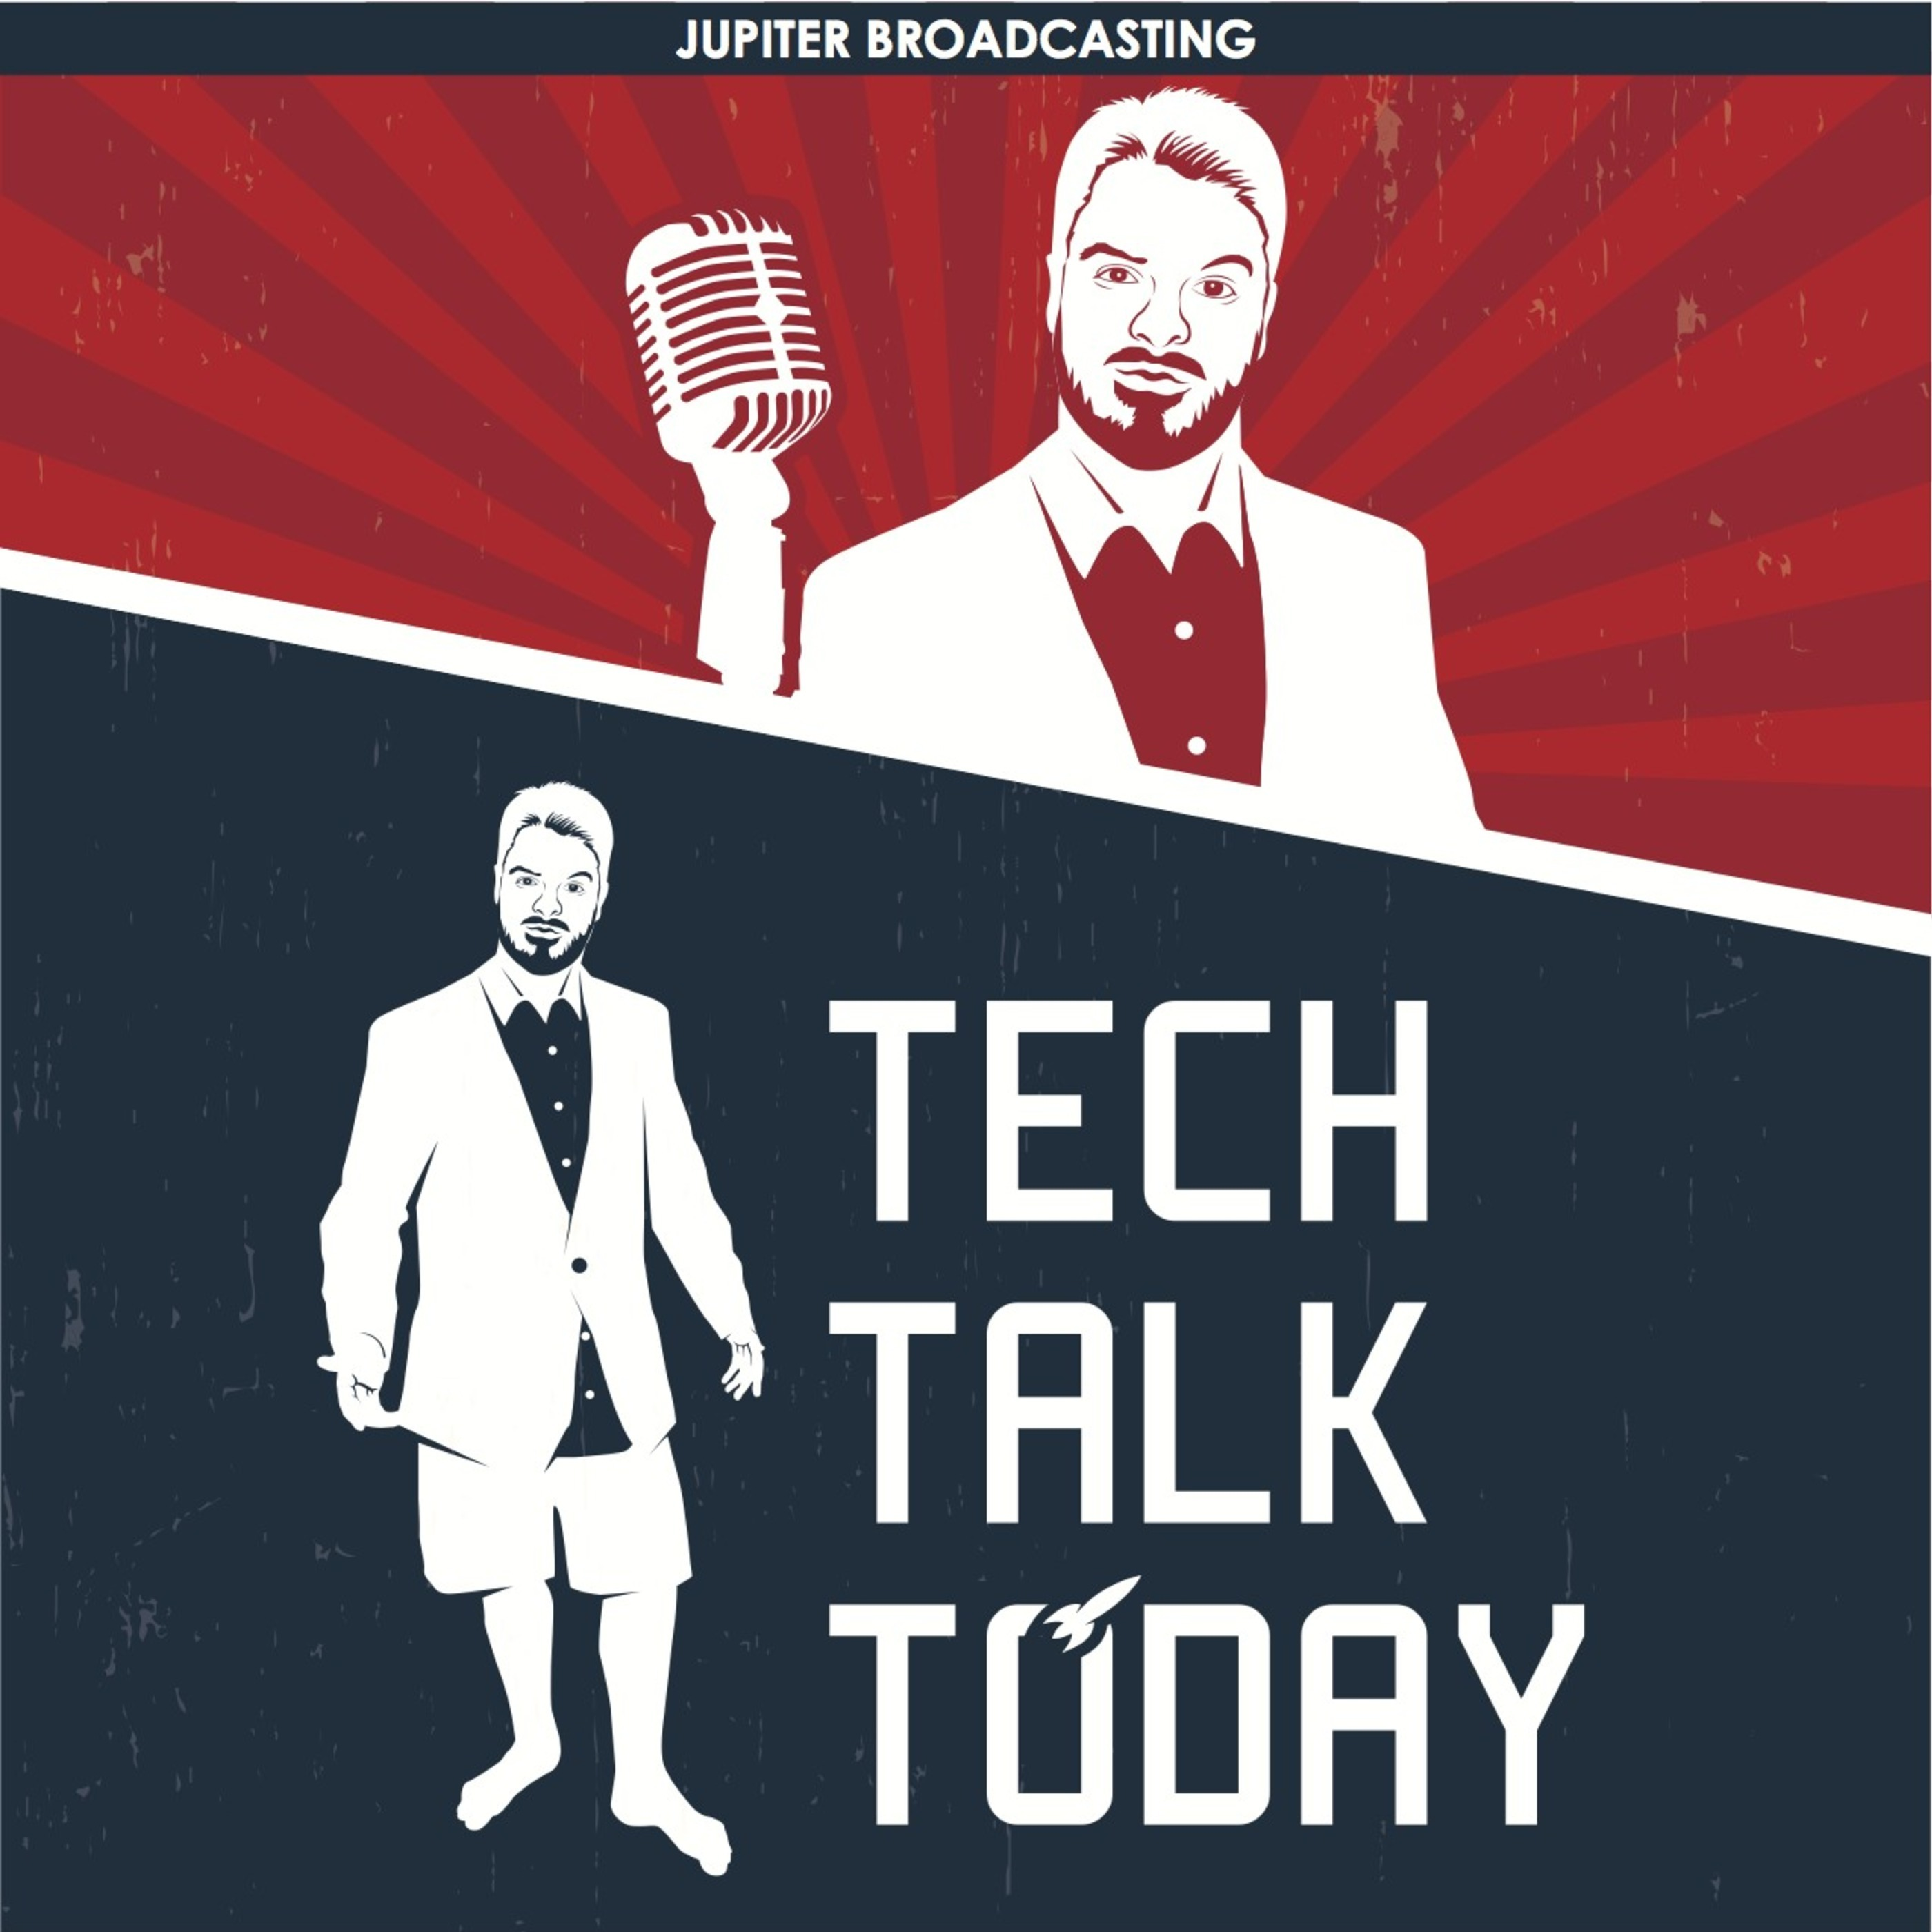 Episode 10: A Comcastic Collapse | Tech Talk Today 163